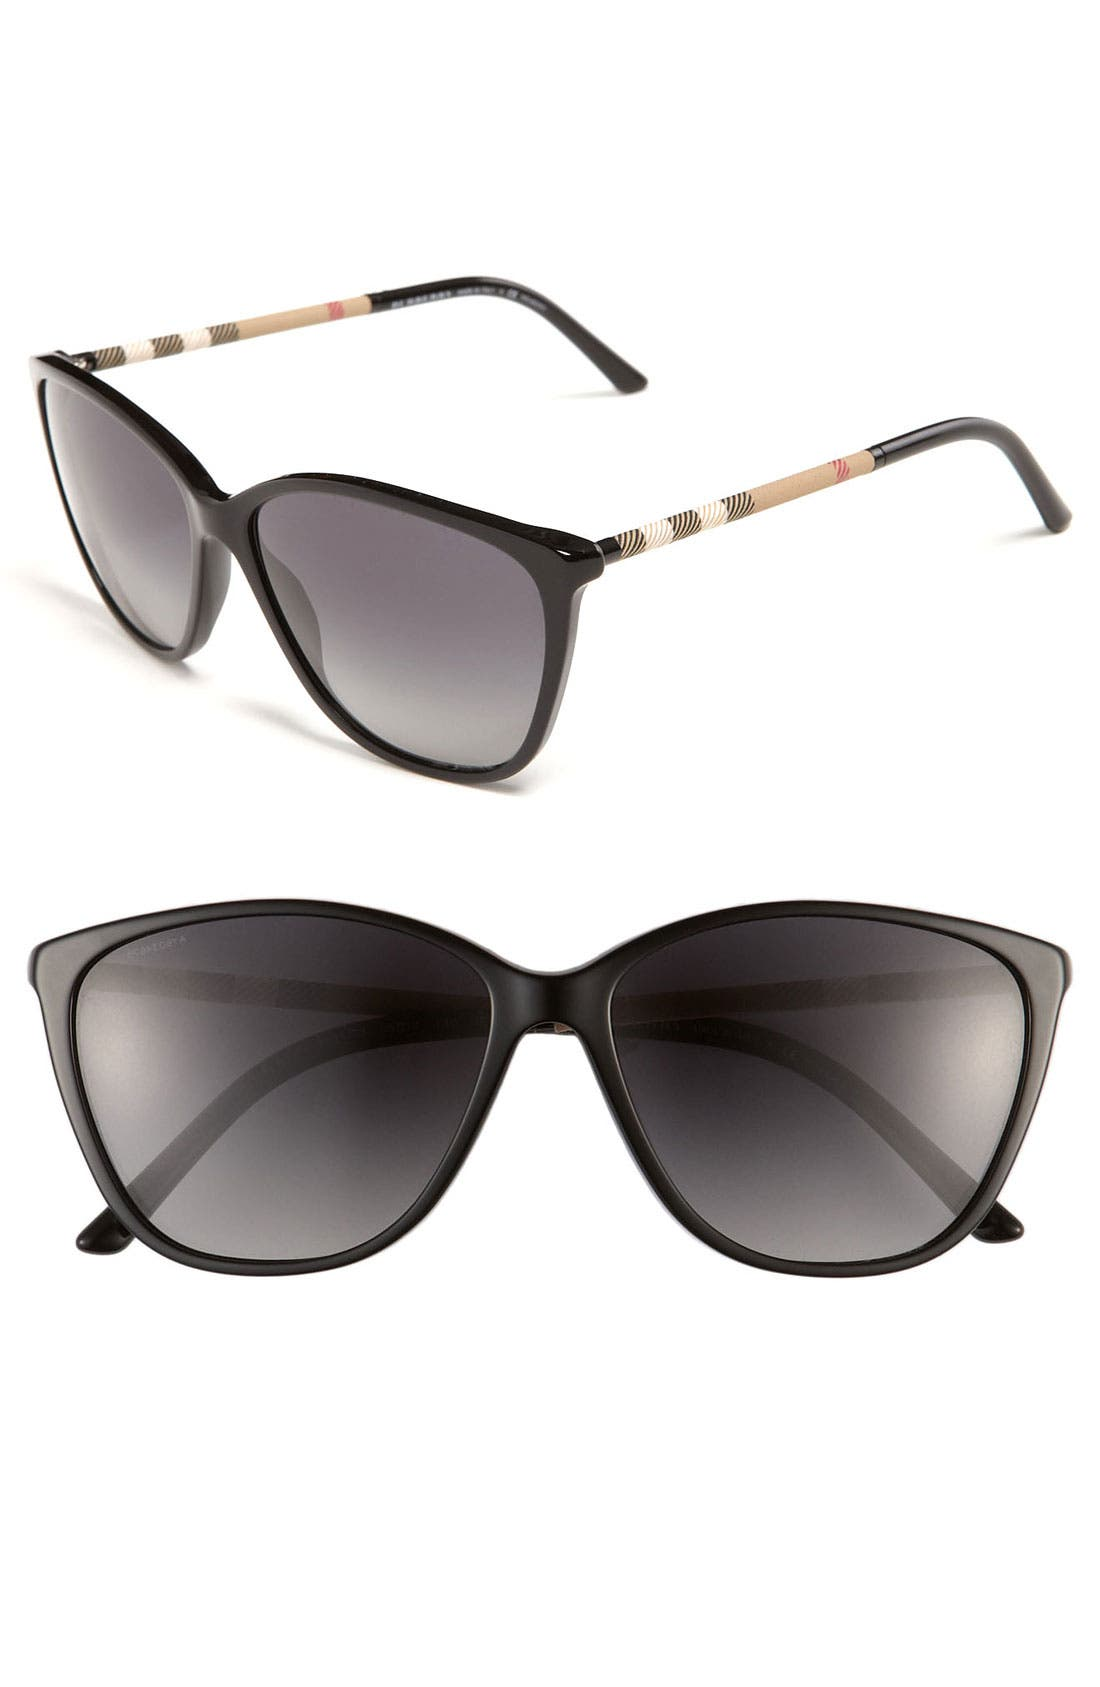 Alternate Image 1 Selected - Burberry Retro 58mm Polarized Sunglasses